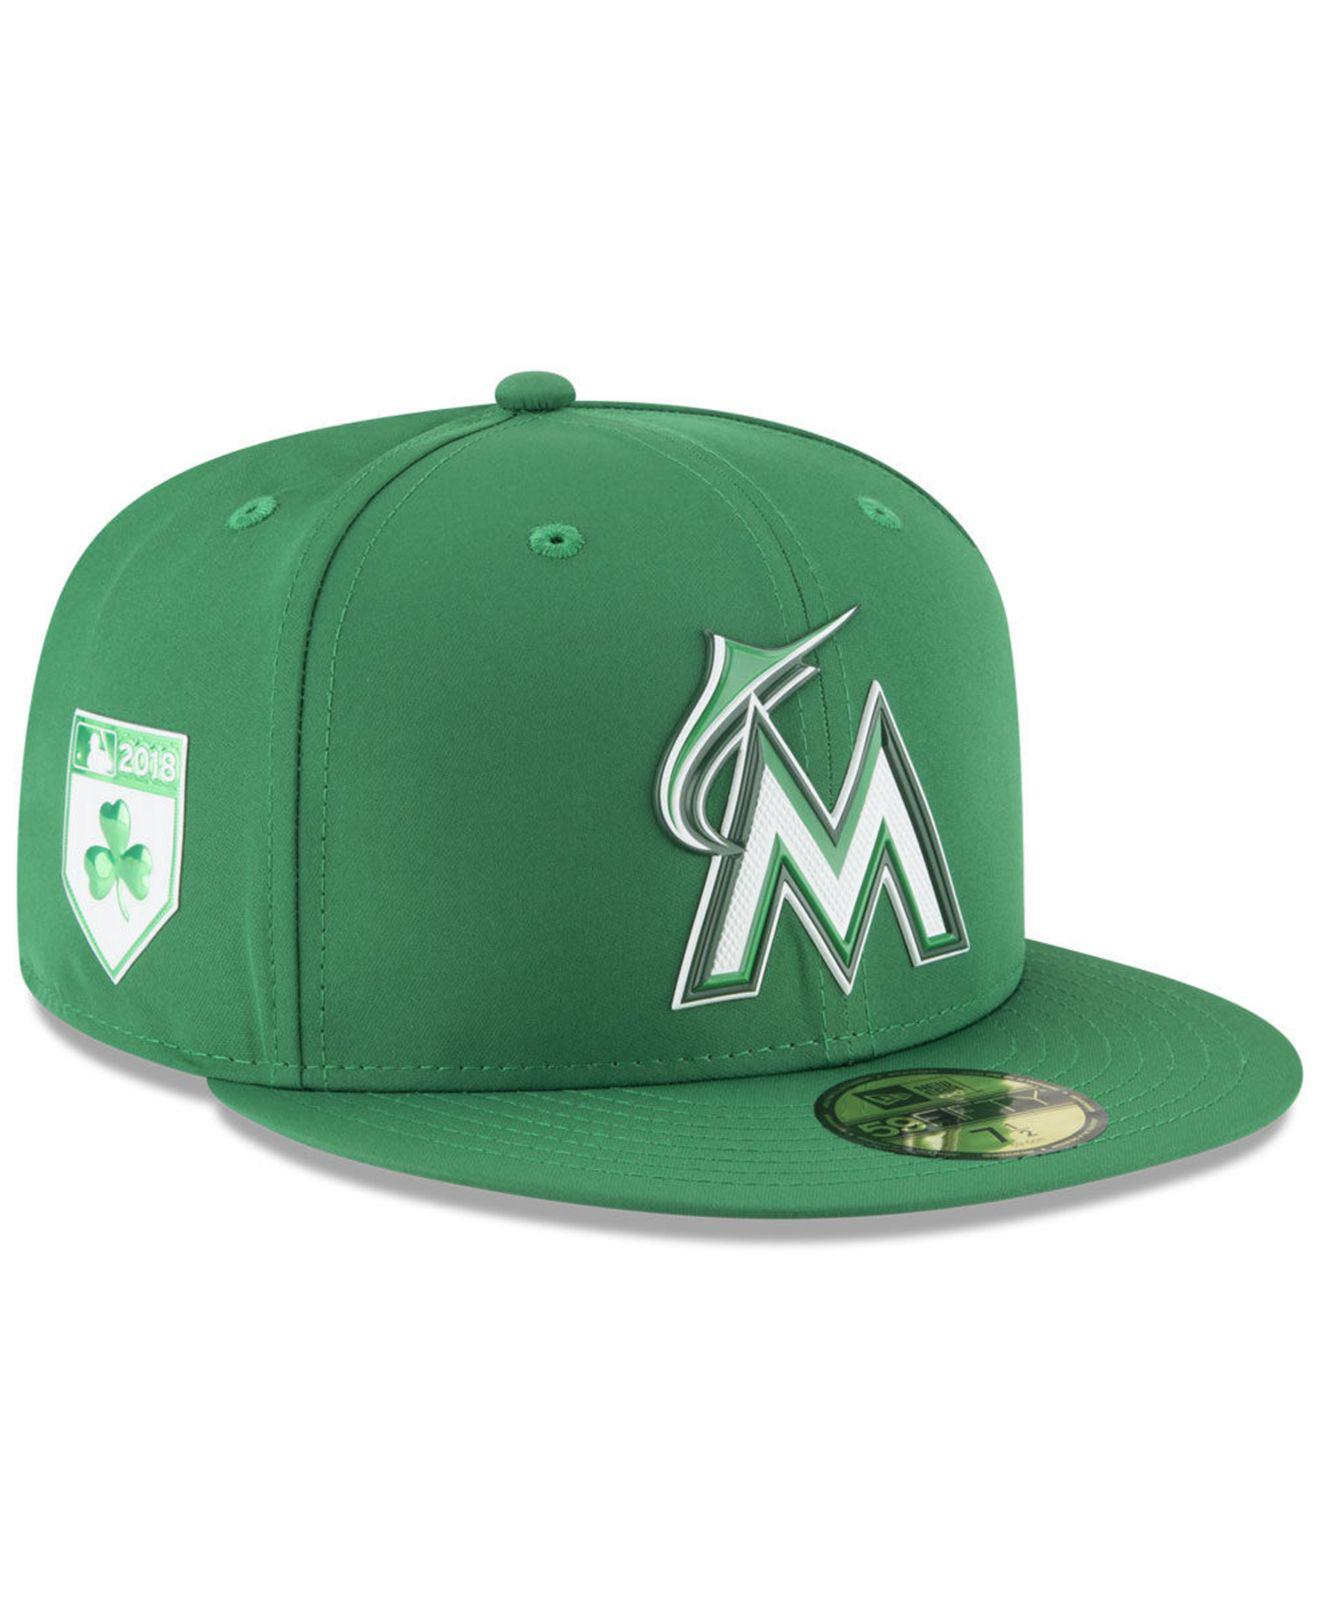 Lyst - Ktz Miami Marlins St. Patty s Day Pro Light 59fifty Fitted ... c5a35f4300f3